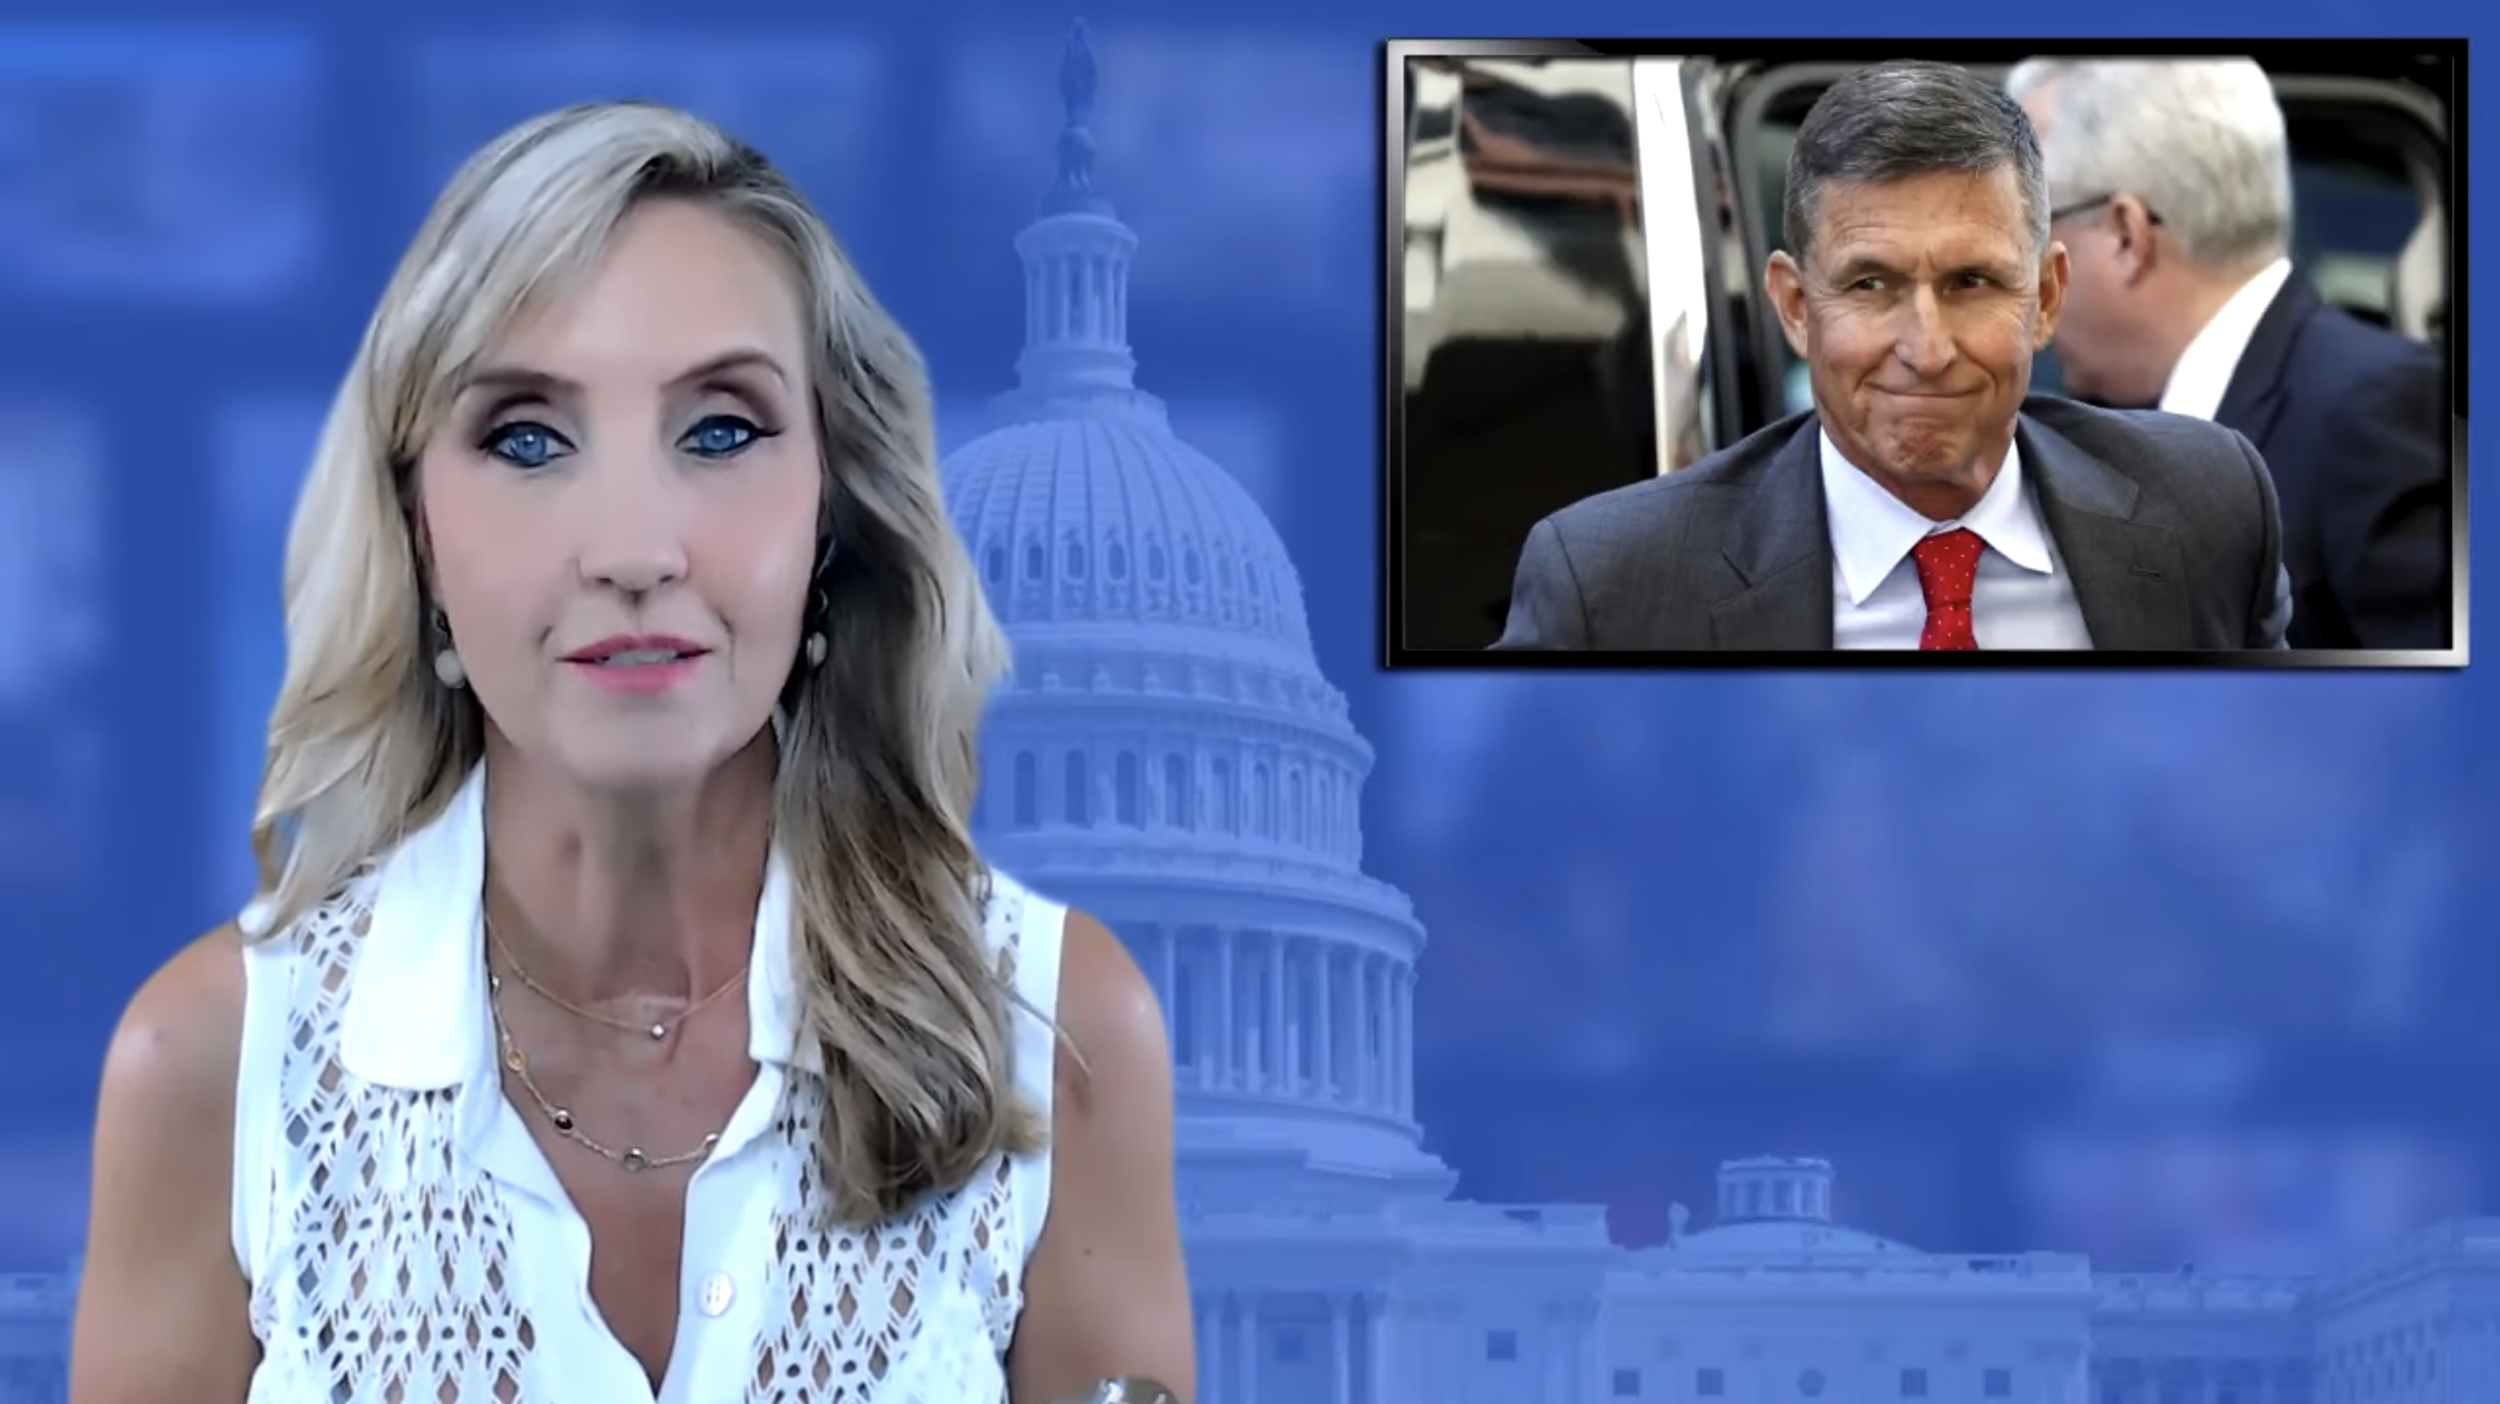 "The Tide is Turning - Ann Vandersteel #SteelTruth with Joseph Flynn , brother to Lt. General Michael Flynn and Pasquale ""Pat"" Scopelliti on the shift in General Flynn Case with new attorney Sidney Powell #LicensedToLie — Interview aired 6/27/19.@annvandersteel @JosephJFlynn1 @GenFlynn @thyconsigliori @SidneyPowell1"